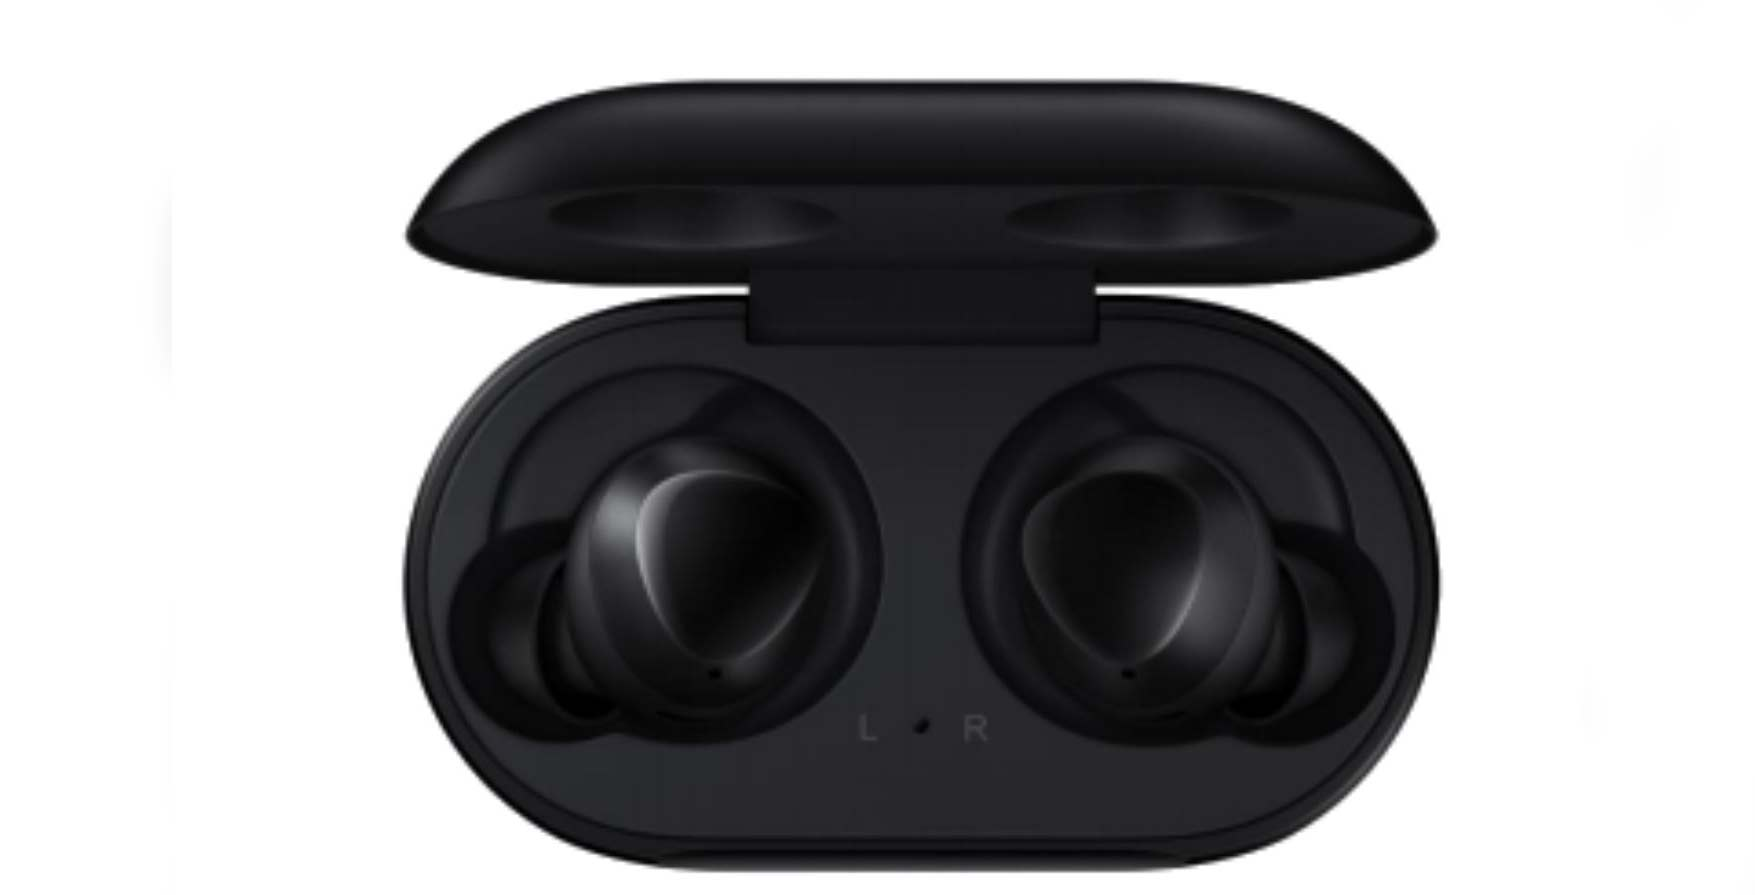 More details about the Samsung Galaxy Buds emerge: report